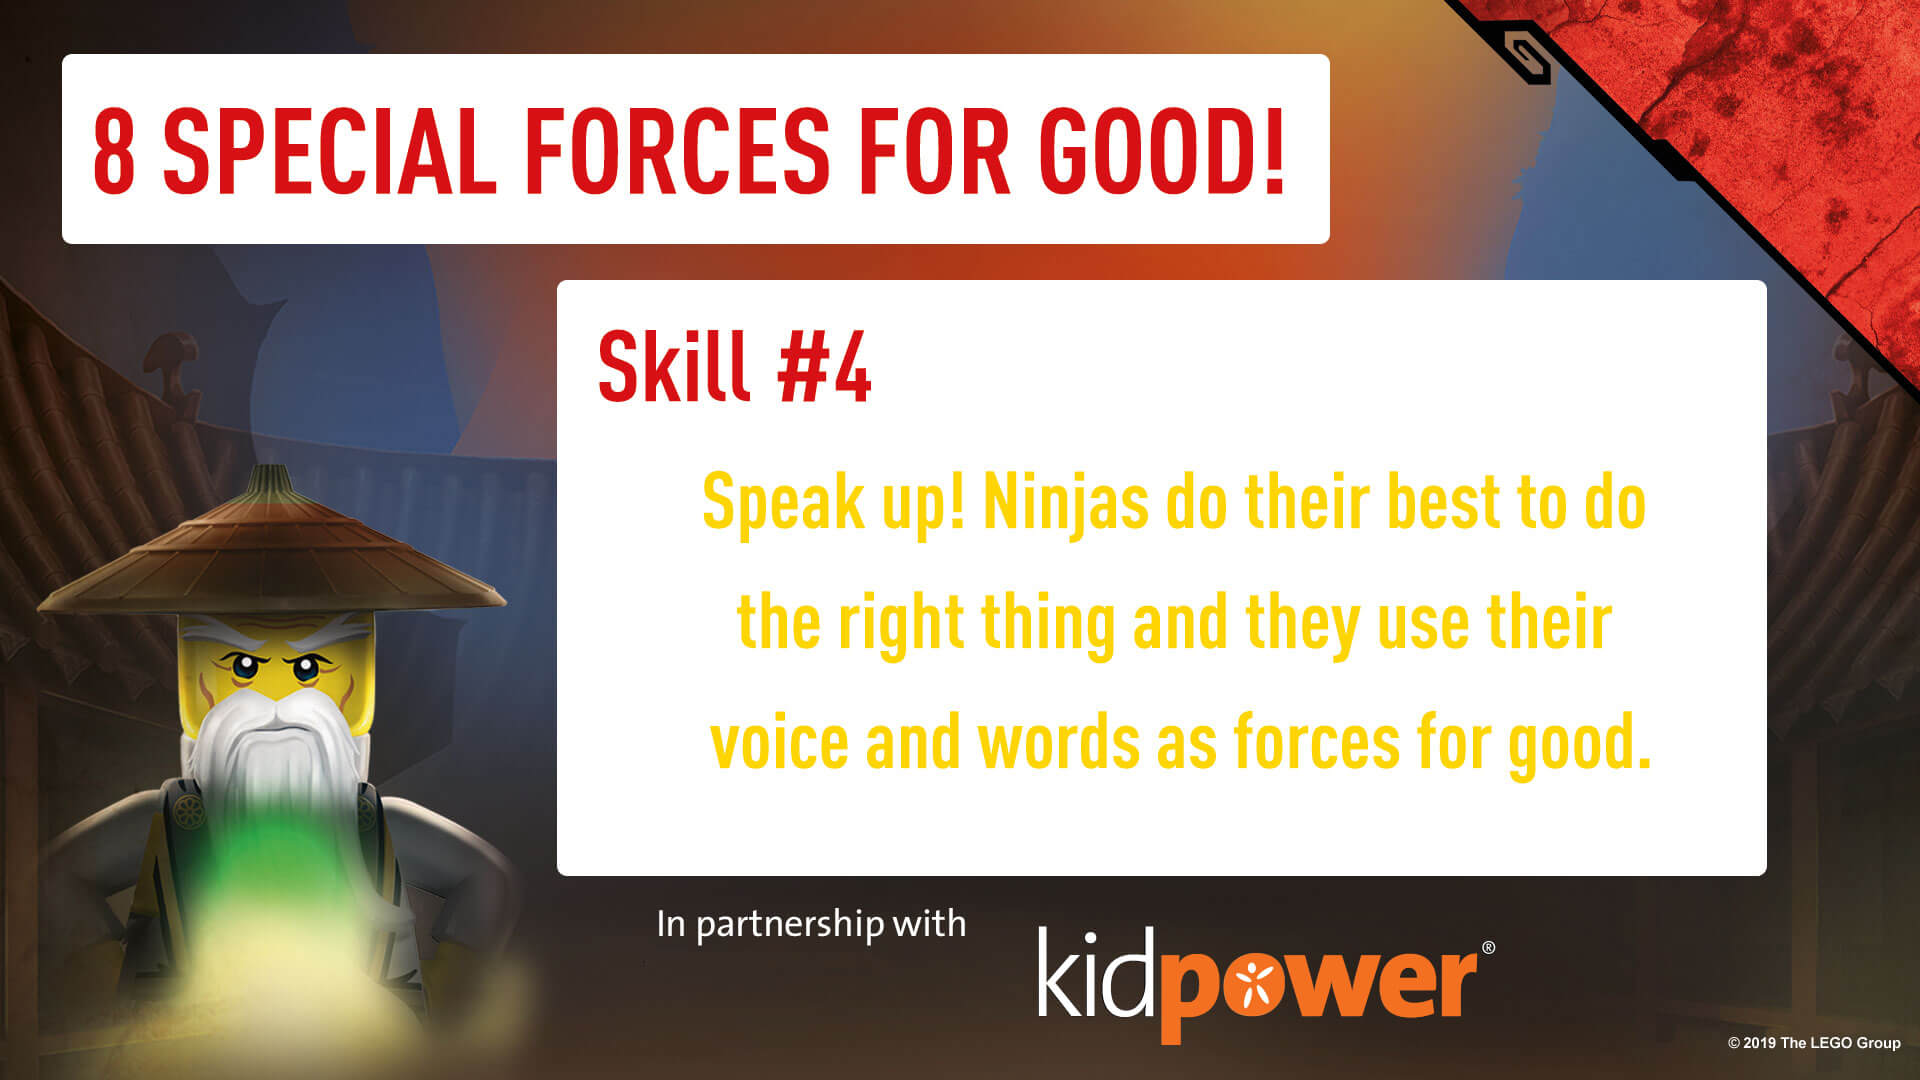 Special Forces For Good - Skill #4 - NINJAGO & KIDPOWER